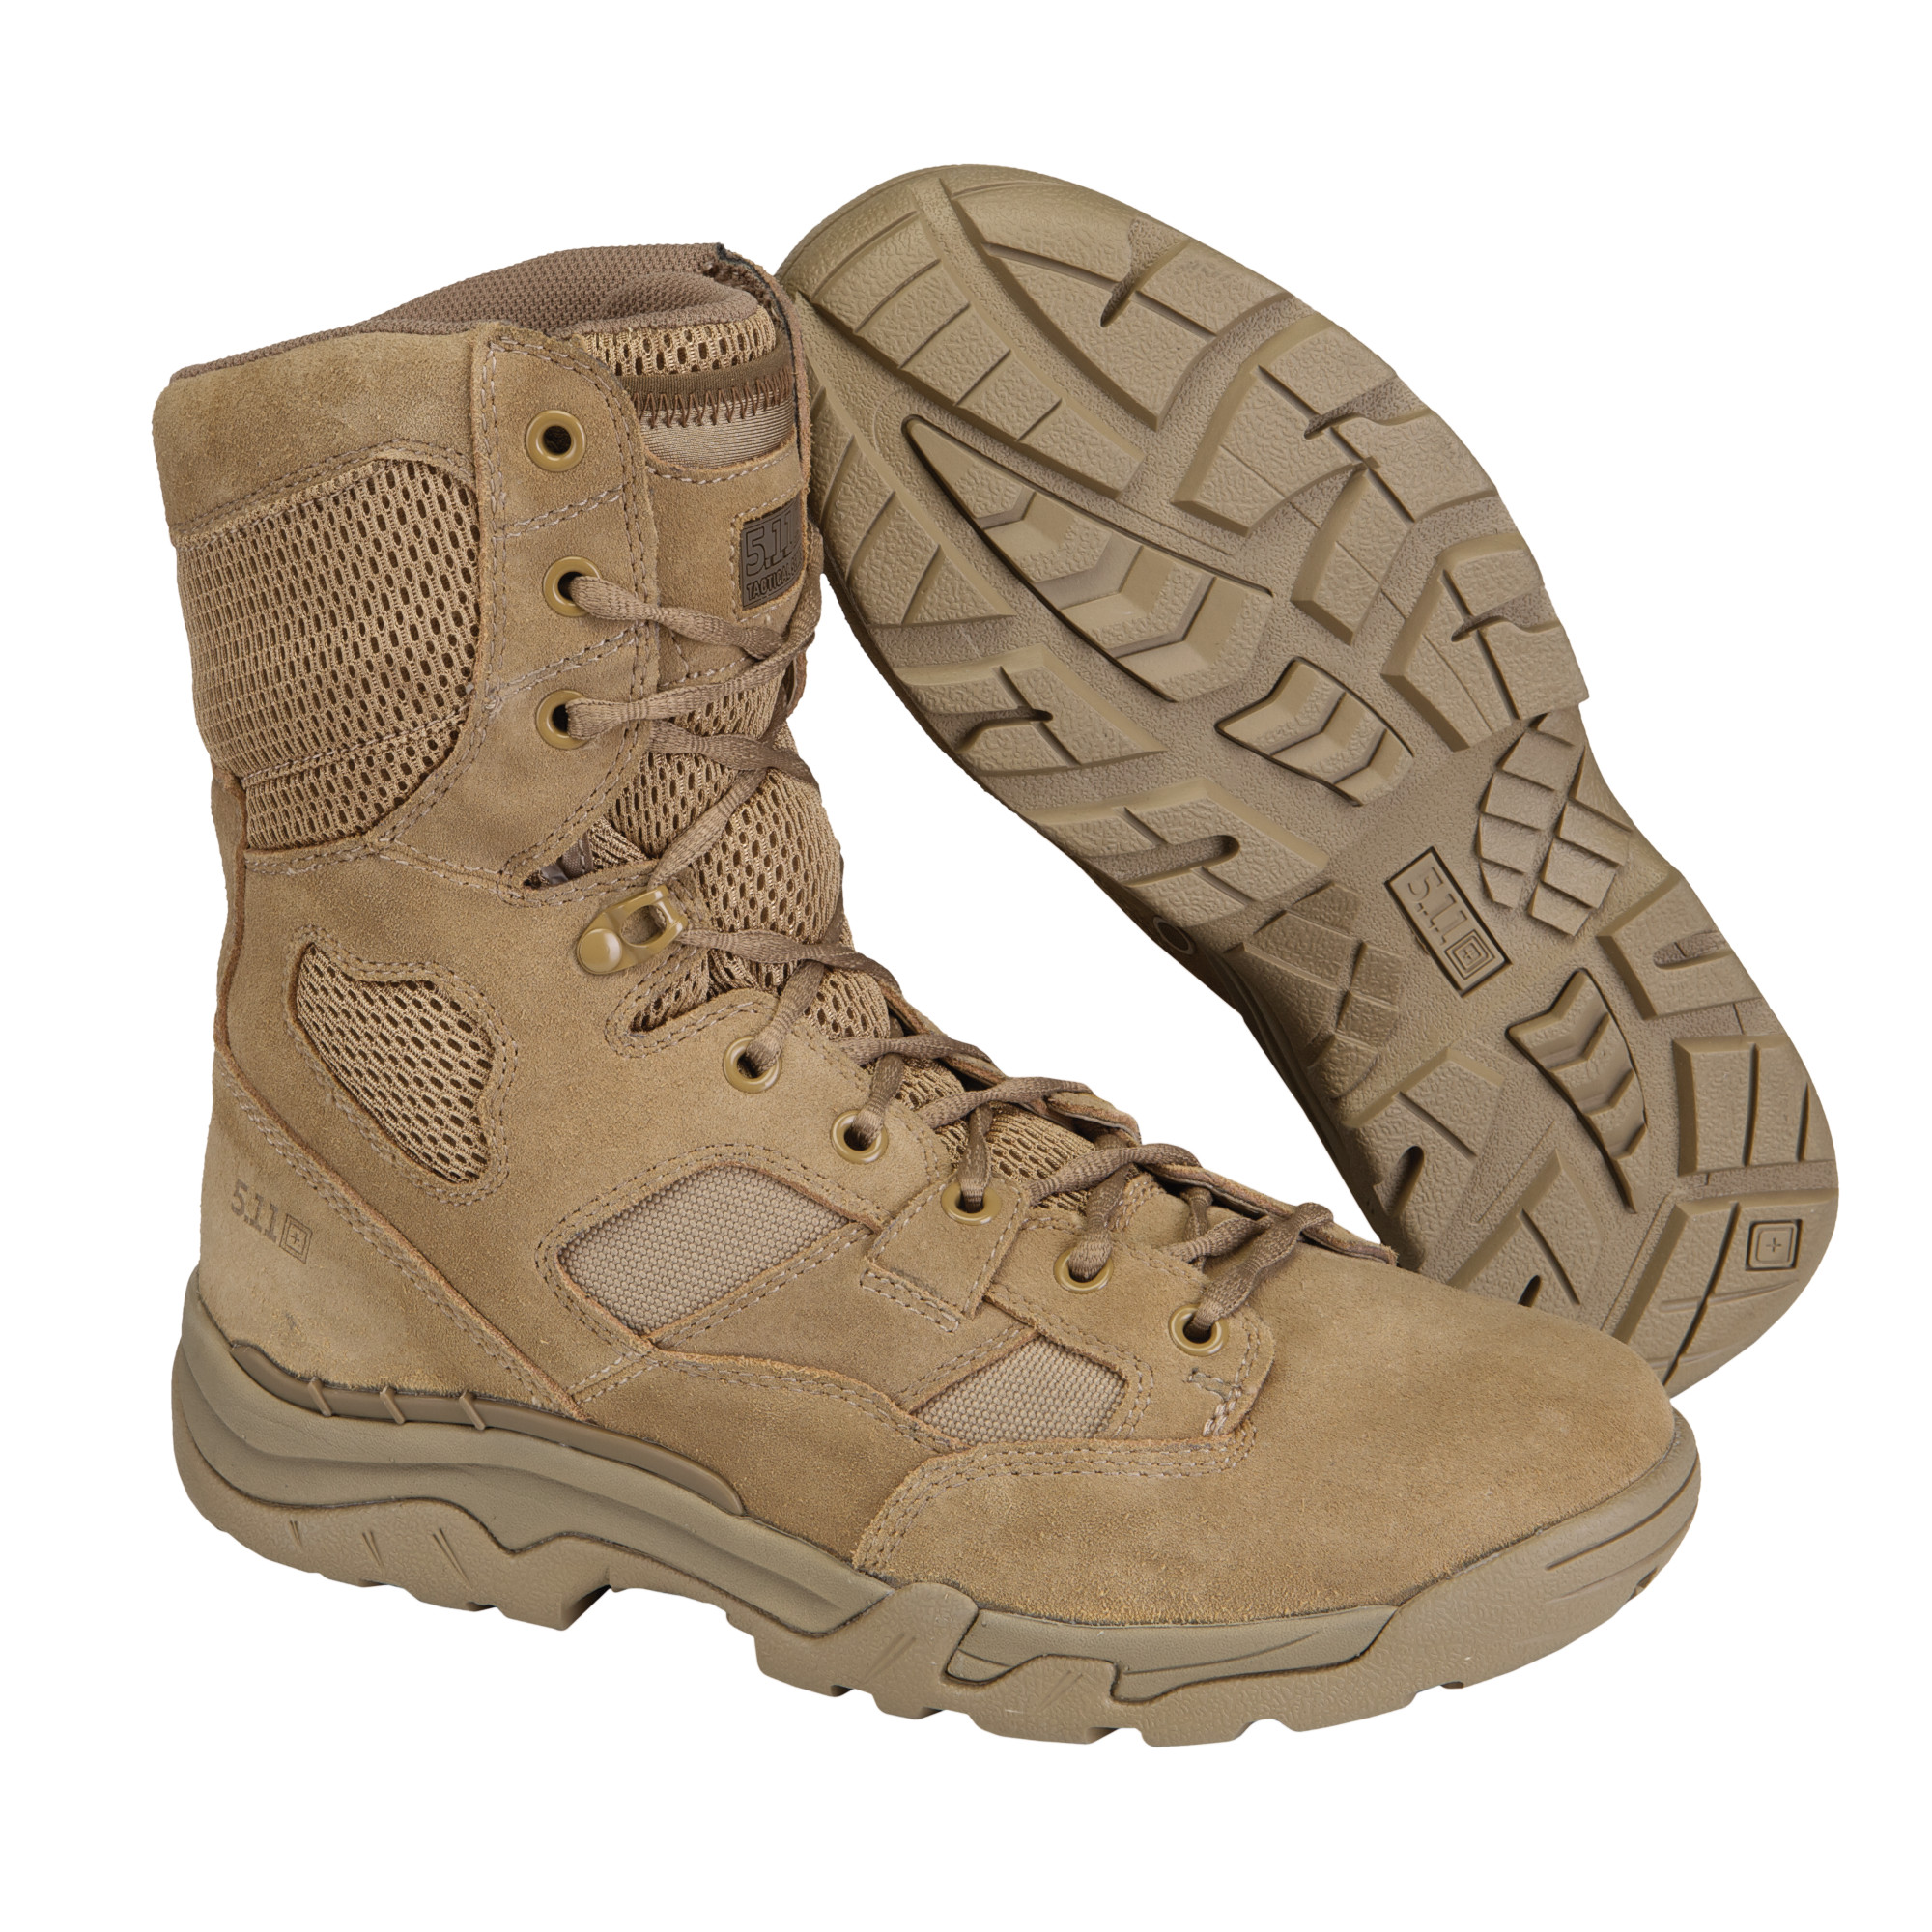 Tactical Amp Duty Footwear Ack Universal